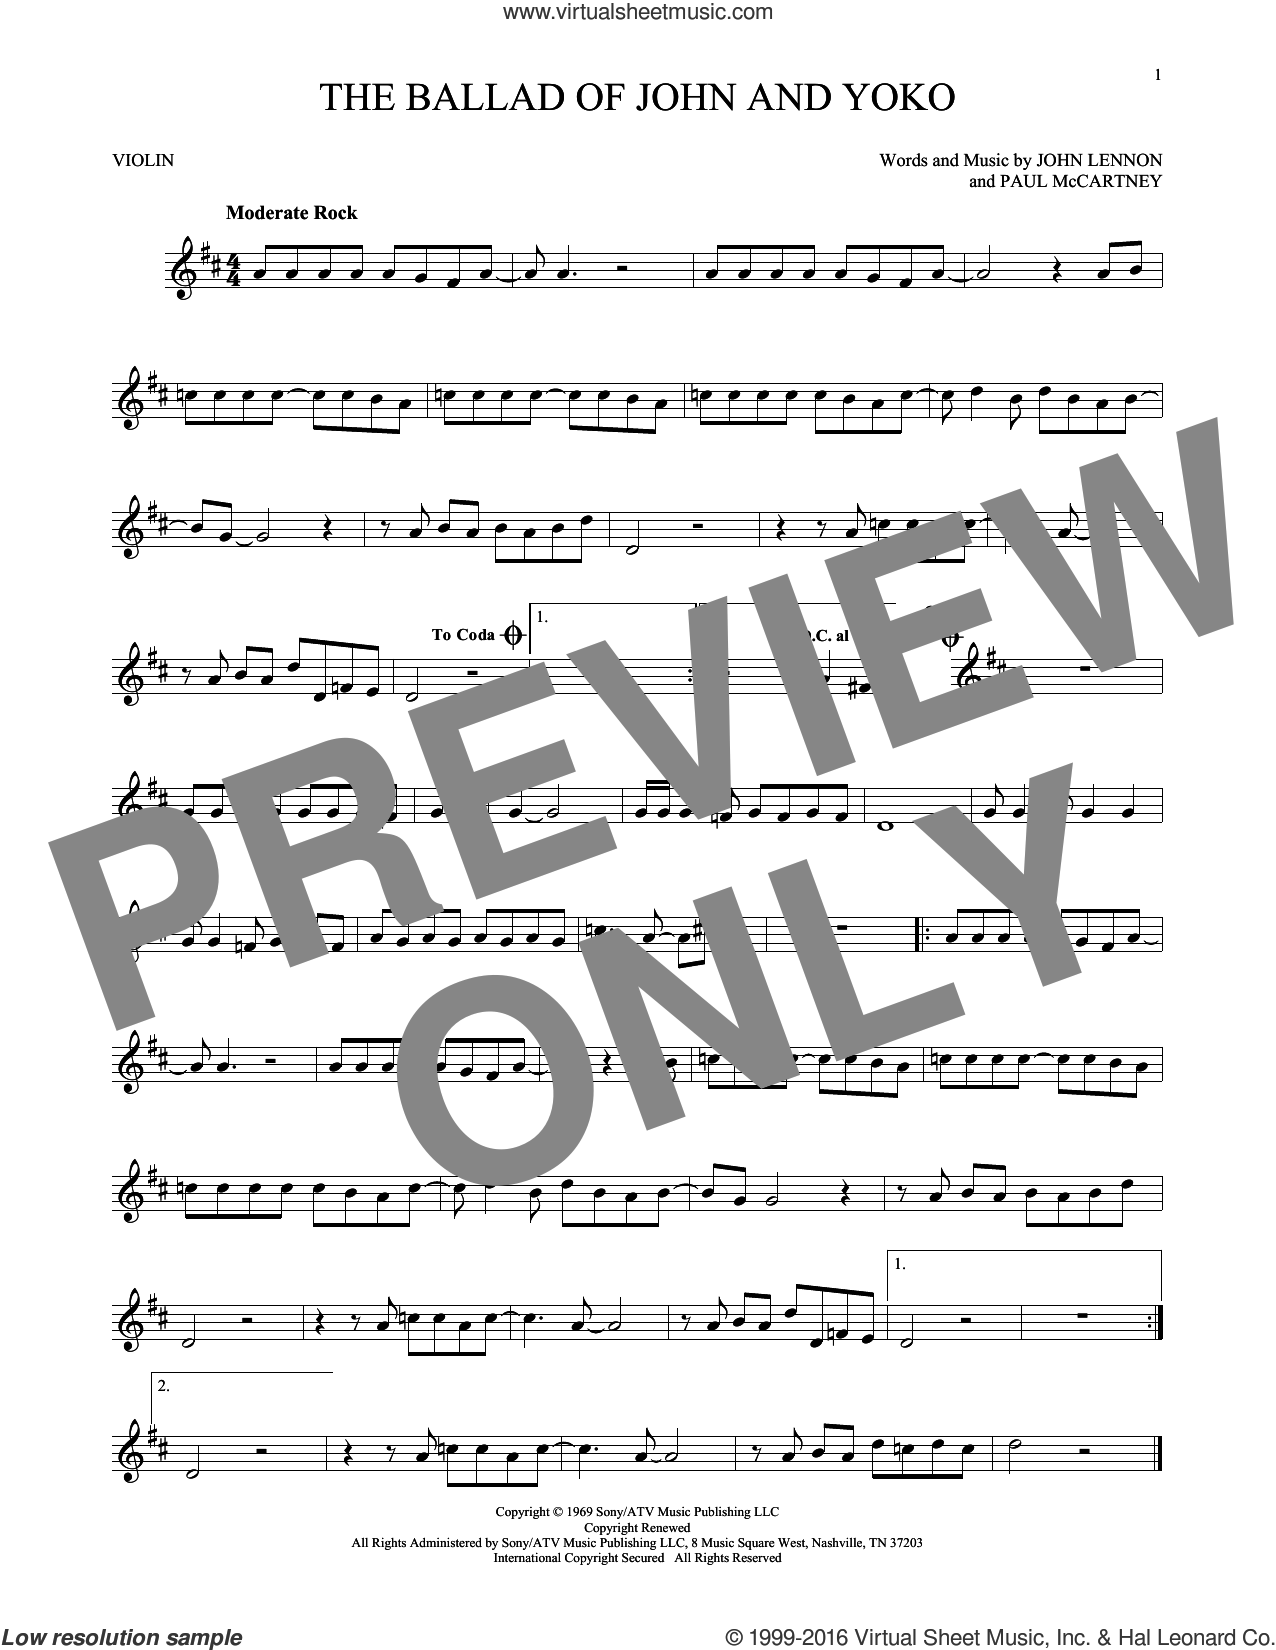 The Ballad Of John And Yoko sheet music for violin solo by The Beatles, John Lennon and Paul McCartney, intermediate skill level